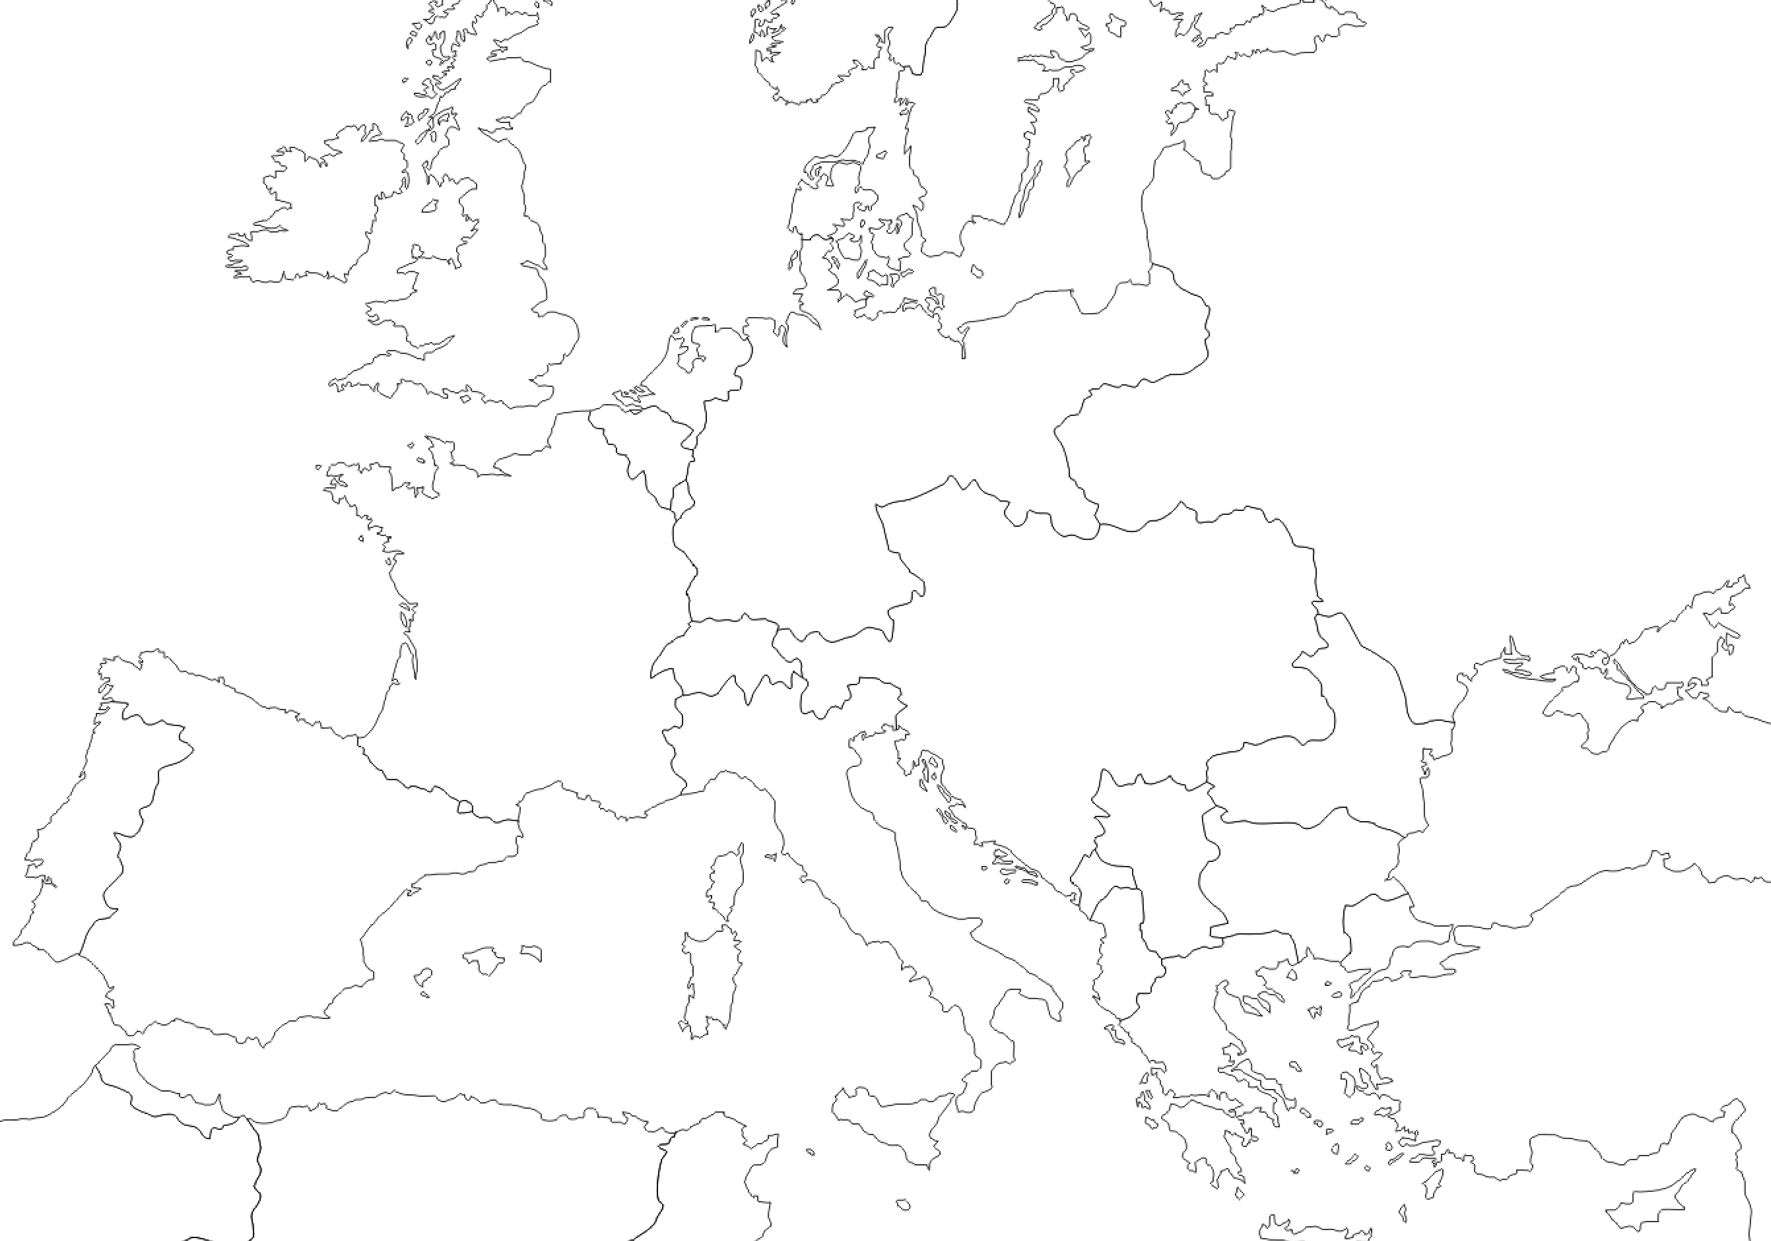 Europe Drawing Map At Getdrawings